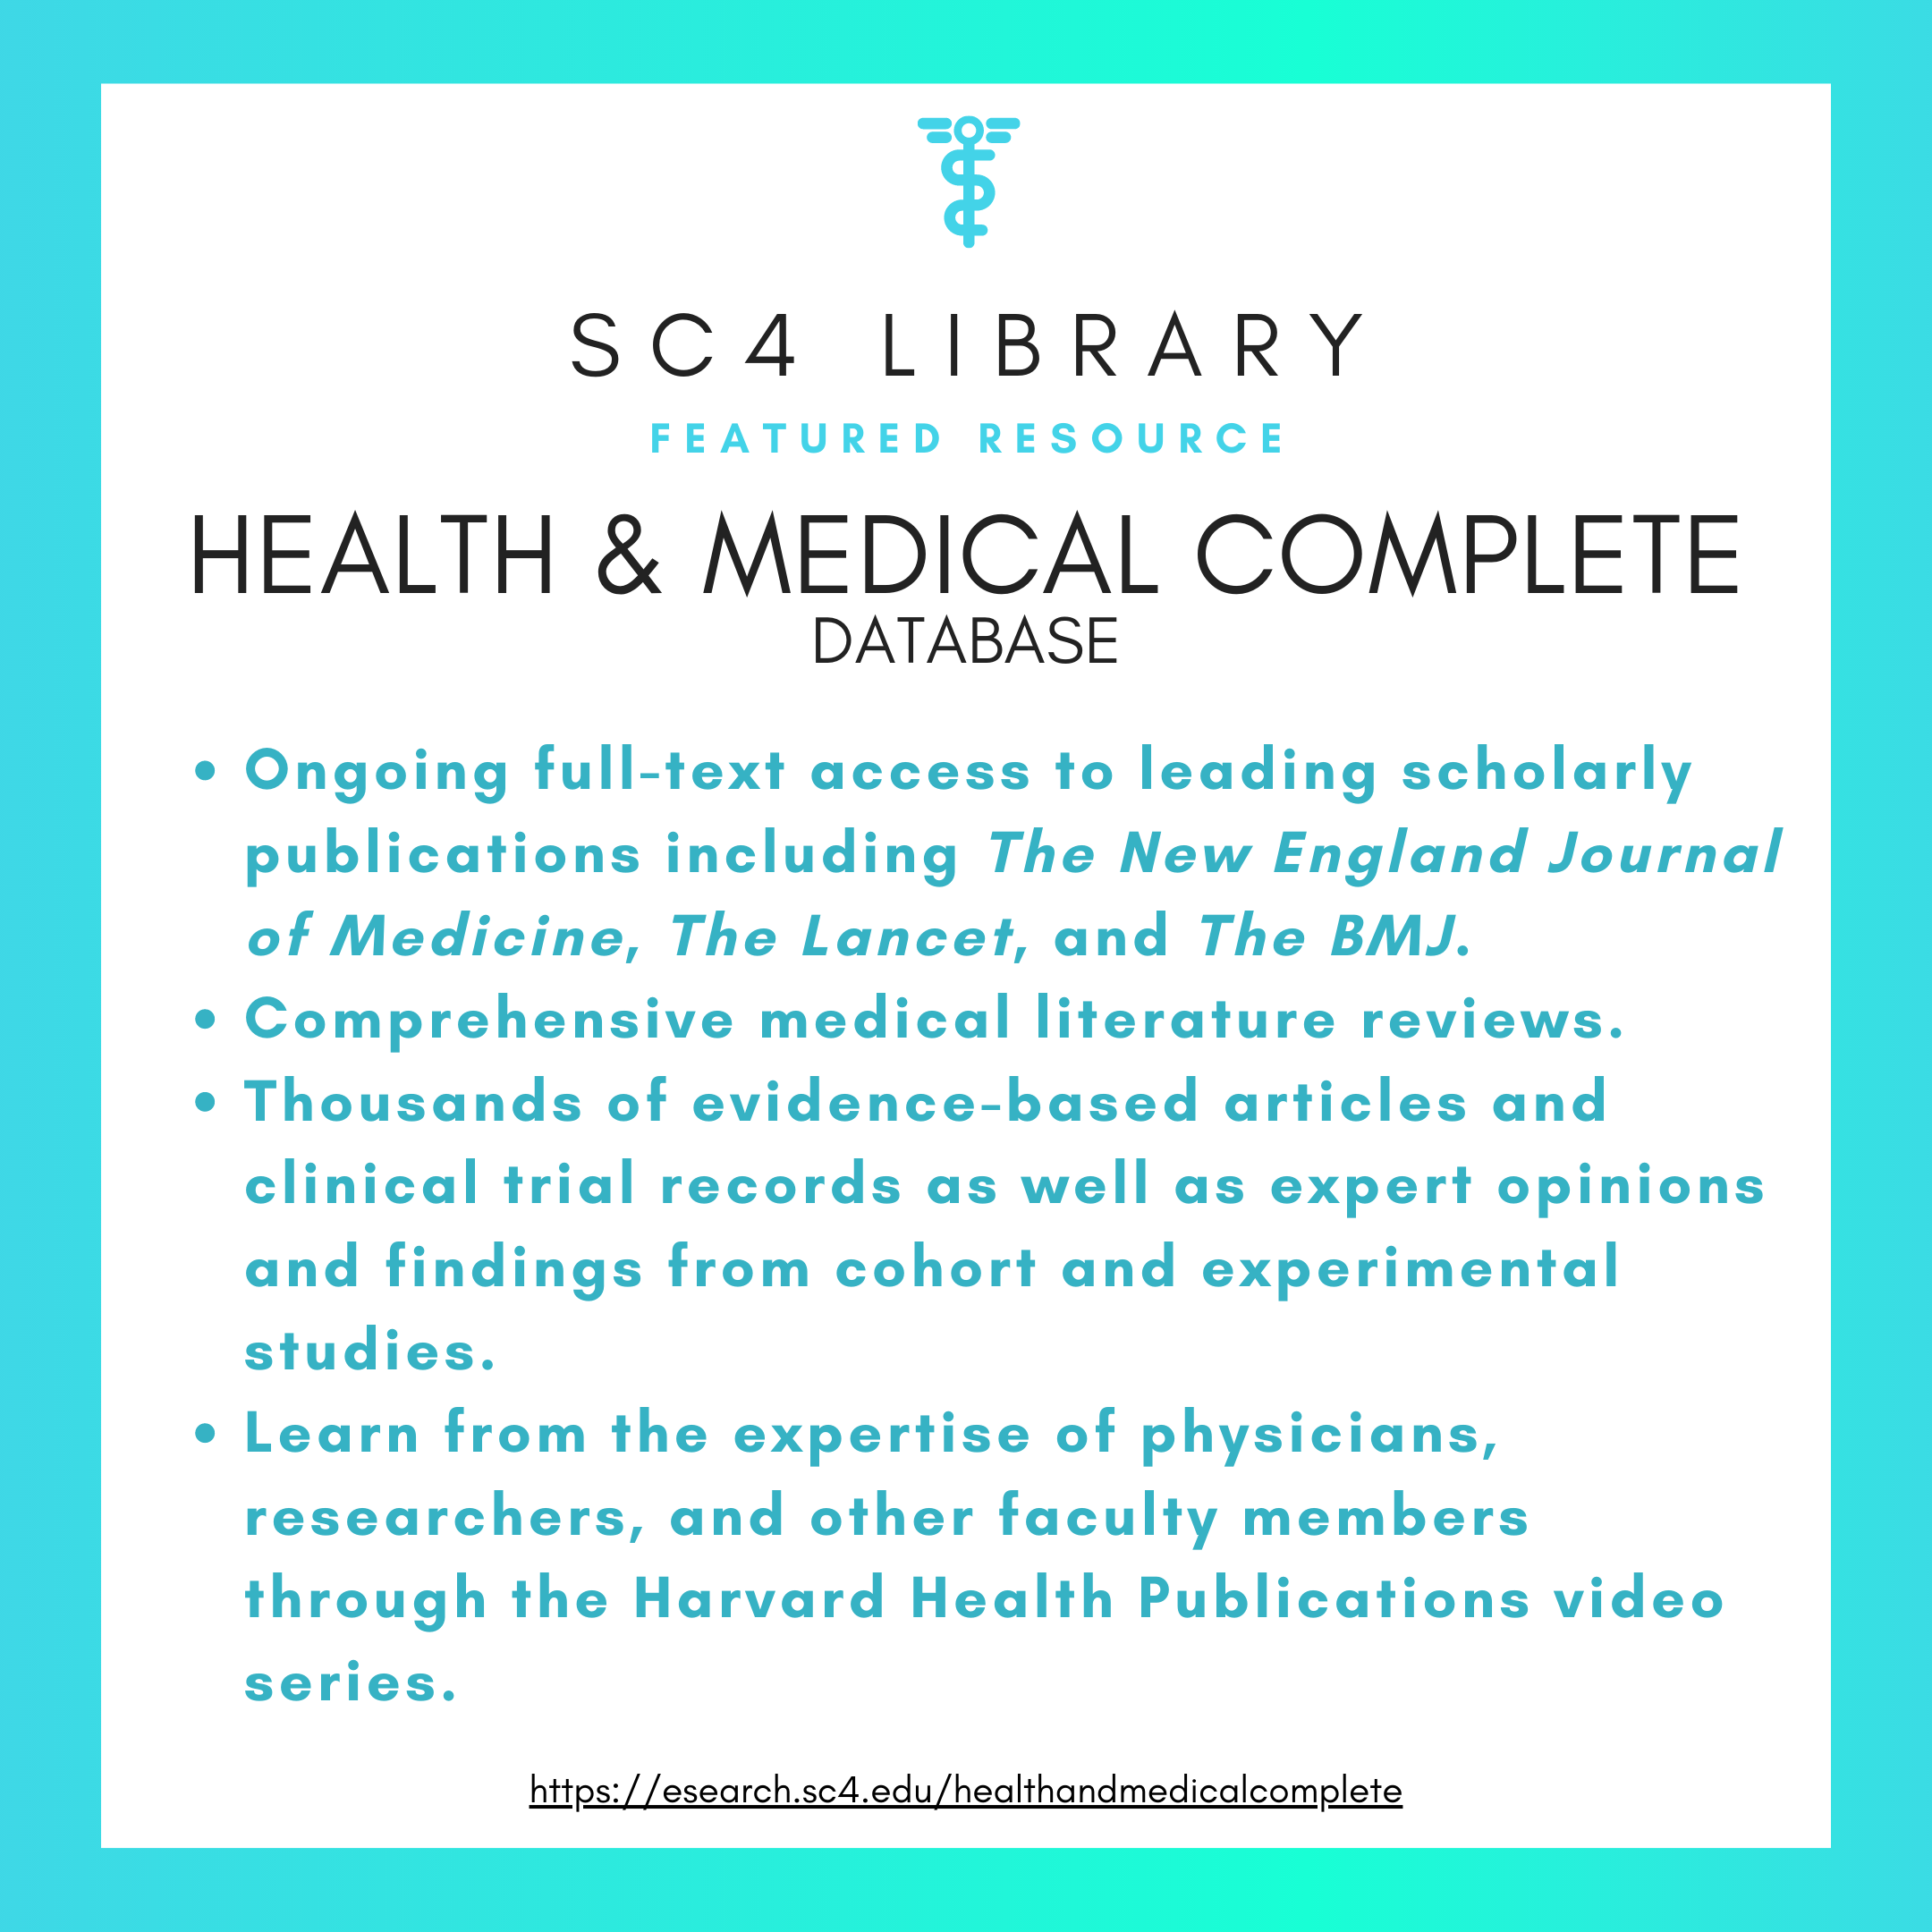 SC4 Library Featured Resource: health & medical complete database